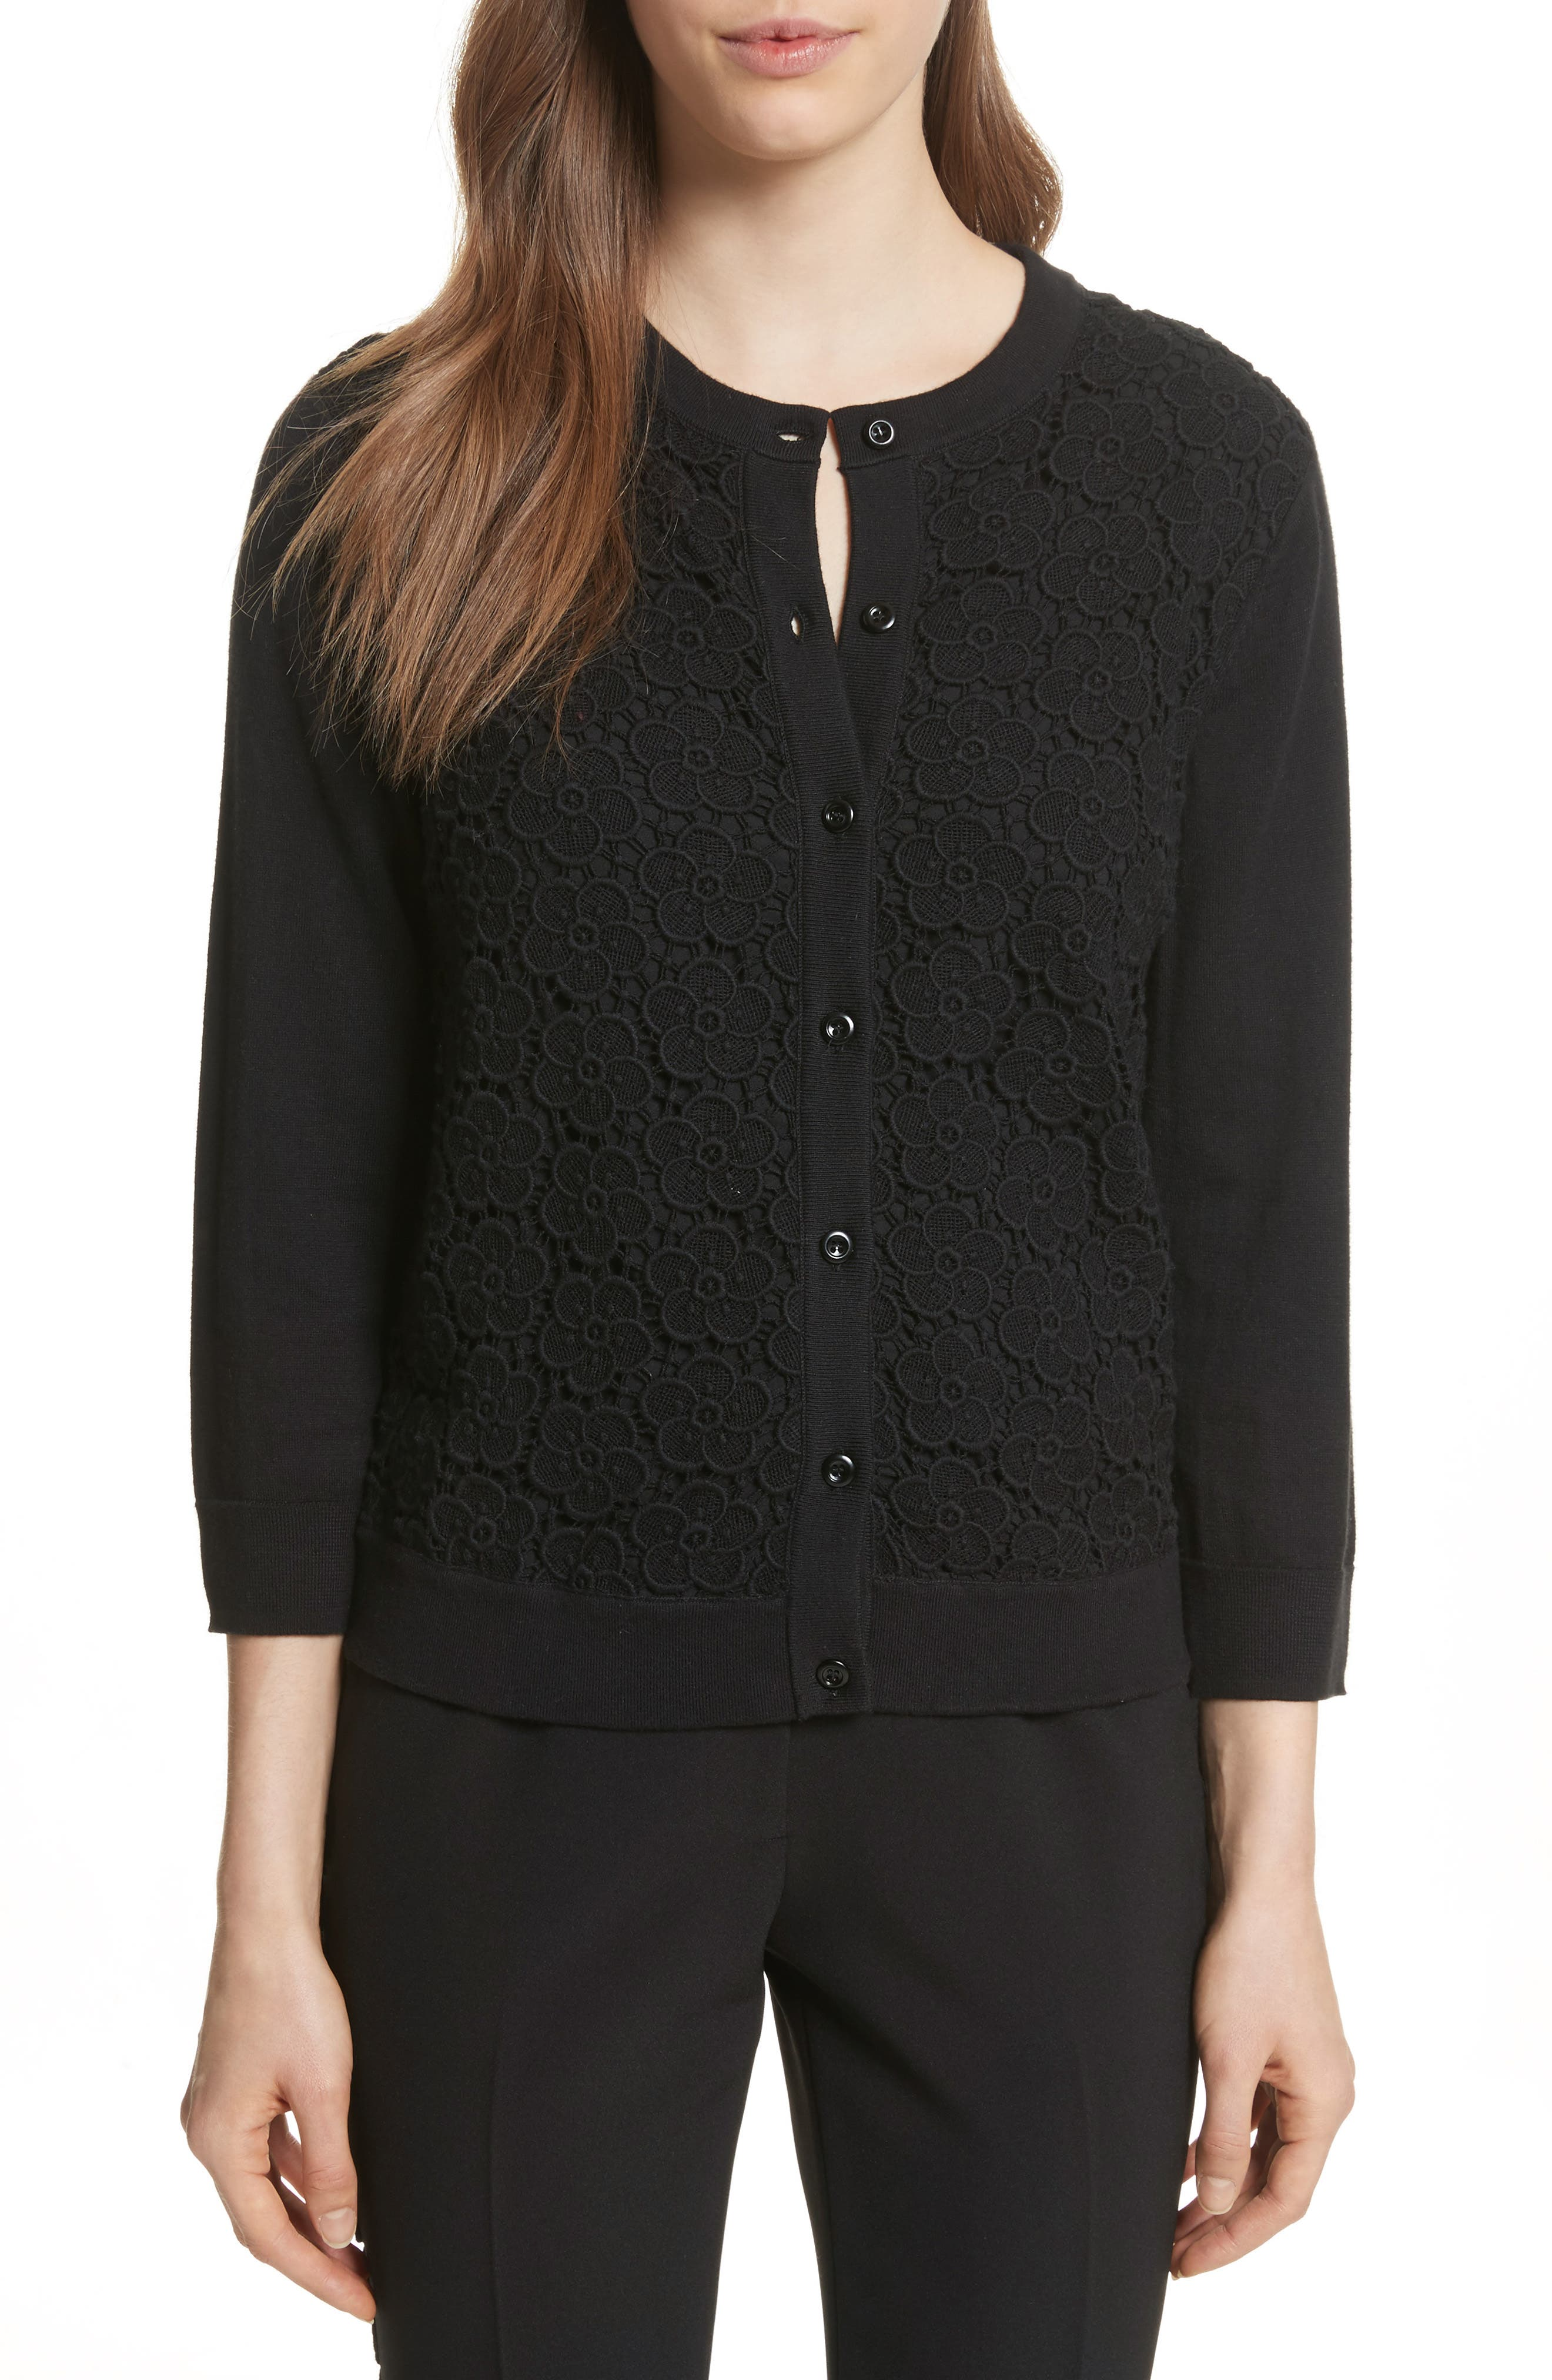 bloom floral lace cardigan,                         Main,                         color,